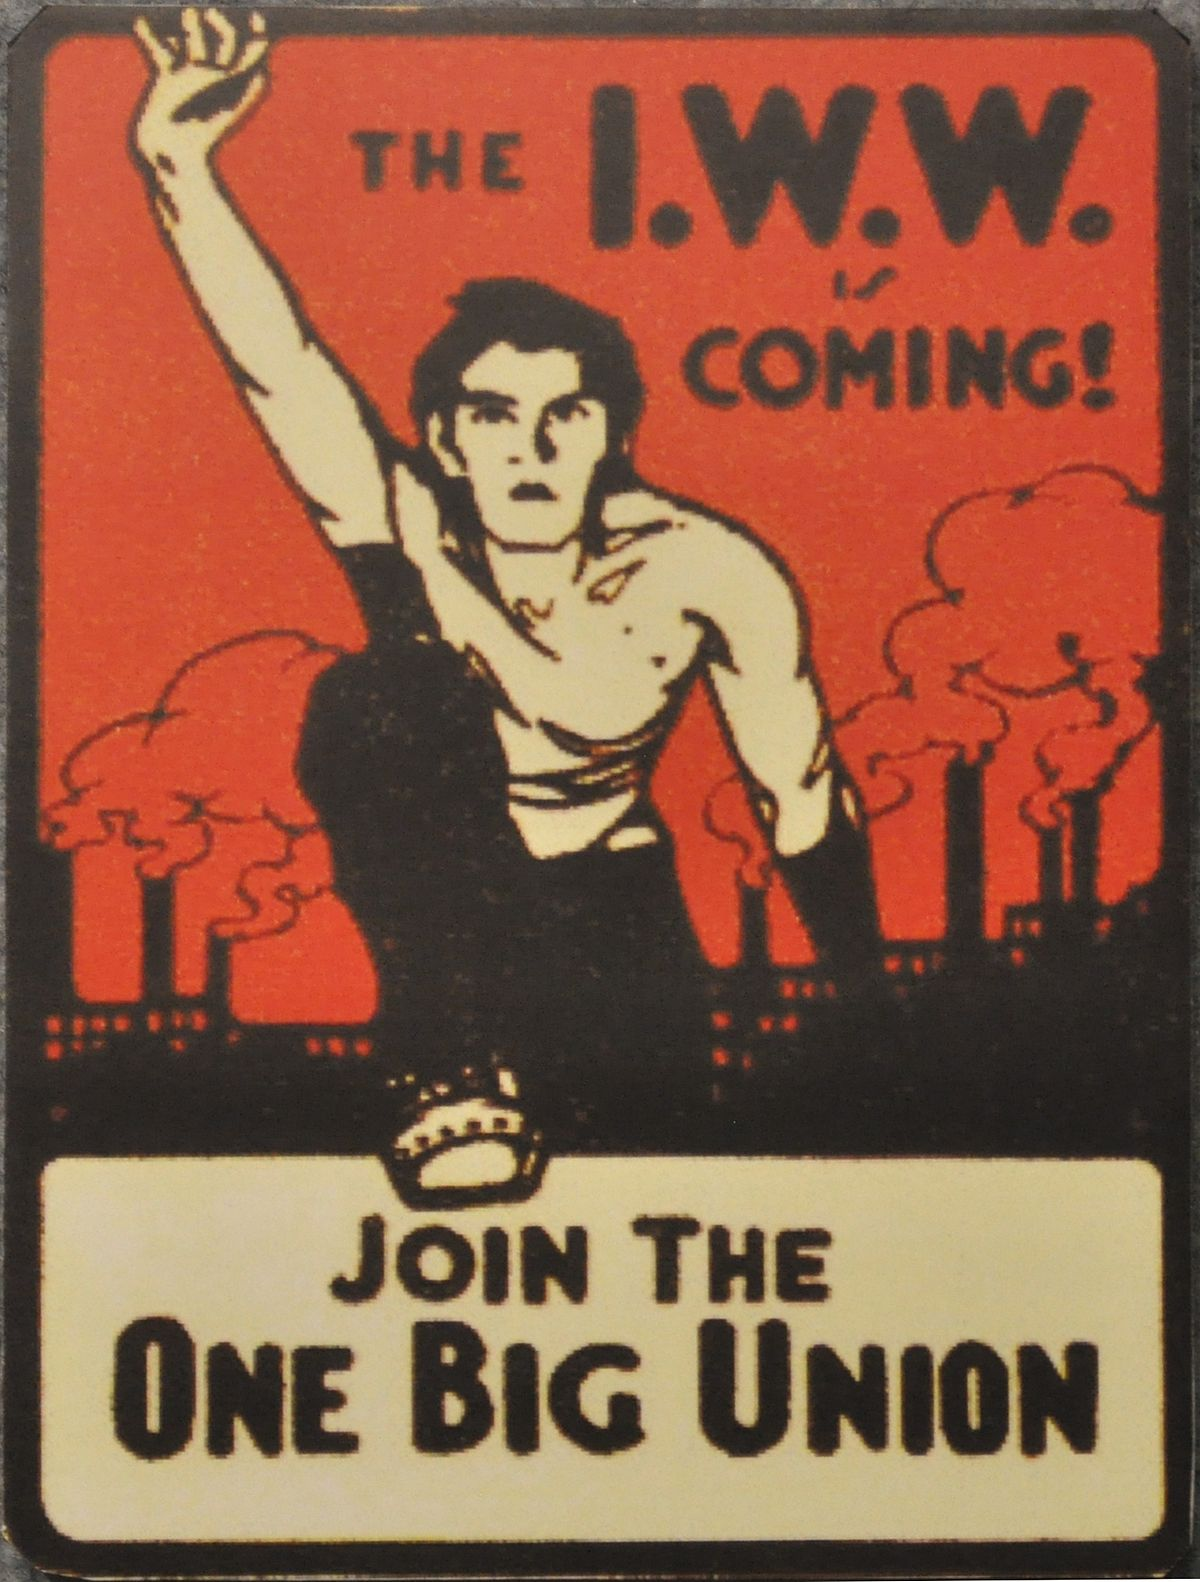 a labor union The benefits of belonging to a labor union, common occupations and industries for union jobs, tips for finding a union job, and how to join a union.